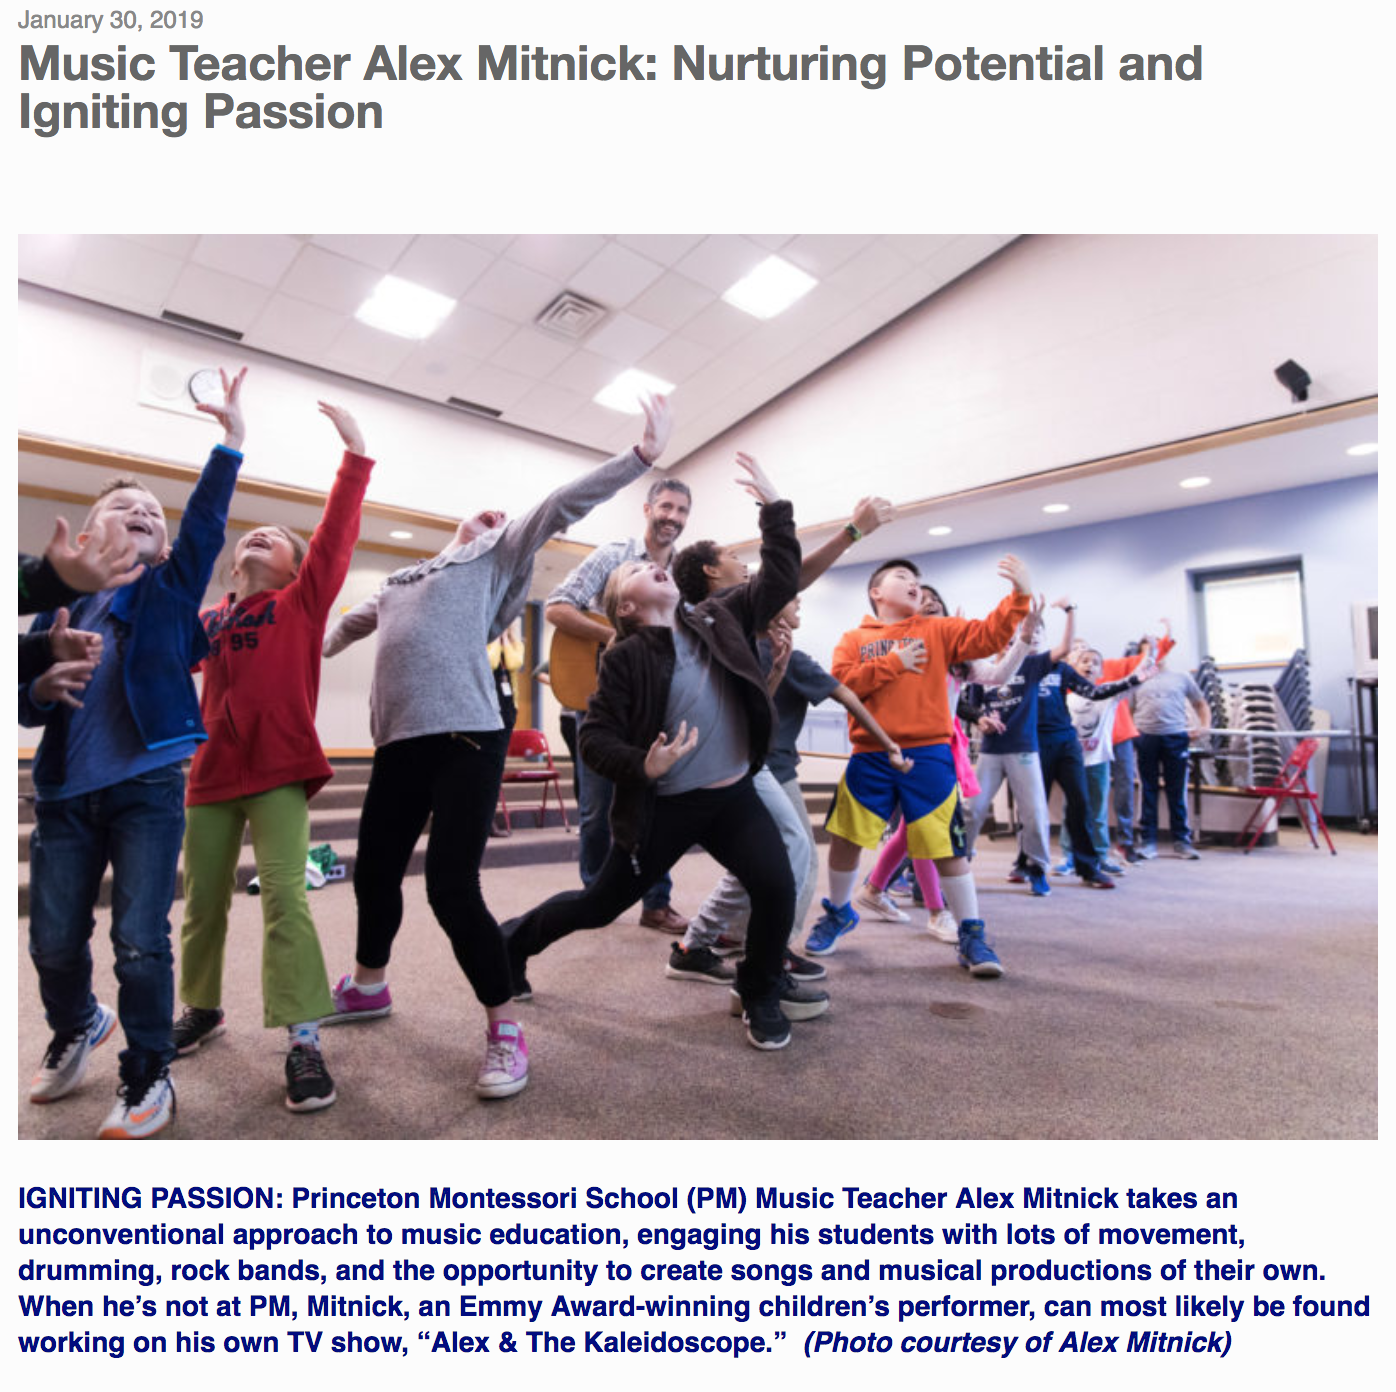 """By Donald Gilpin   """"We nurture potential and seek to ignite each child's passion,"""" states the Princeton Montessori School's (PM) website. """"That's exactly what happened to me,"""" said PM Music Teacher and Emmy Award-winner Alex Mitnick, who also has his own TV show,  Alex & The Kaleidoscope,  on New York City Public TV.  """"I was in an environment with a school director who allowed me to do what I wanted to do, and it really did ignite a passion that I have for music and kids,"""" he continued. """"I don't know if it would have happened anywhere else. I'm able to write songs and produce shows in my little laboratory here, and that slogan informs all the work I do.""""  In his 19th year at PM and currently teaching music to students from third grade through middle school, Mitnick is working on an original musical about the life of Maria Montessori to celebrate the 50th anniversary of PM. The musical, which will debut on April 12 and 13, involves the entire school, Mitnick said.  """"Alex is a treasure and a truly talented individual who brings music, theater, and other performing arts to our school community, while also leading a world renowned children's group, Alex & The Kaleidoscope Band,"""" said PM Head Michelle Morrison. """"He serves as our music coordinator and instructs our singing groups, drumming circle, guitar players, and directs and writes our original annual musicals. We are very fortunate to have his talents and passion.""""  Mitnick, 43, explained that music has always been present in his life. Though not professional musicians, both his parents loved music. His mother sang in community theater groups and played the piano, and his father, an architect, played the guitar. They always had a piano in the house.  Mitnick took up the trumpet in fifth grade, then started guitar and percussion in high school in Montgomery County, Pa., where he grew up. He enjoyed the high school band, jazz band, and chorus, and especially enjoyed jamming with friends. """"Toward the end of high school,"""